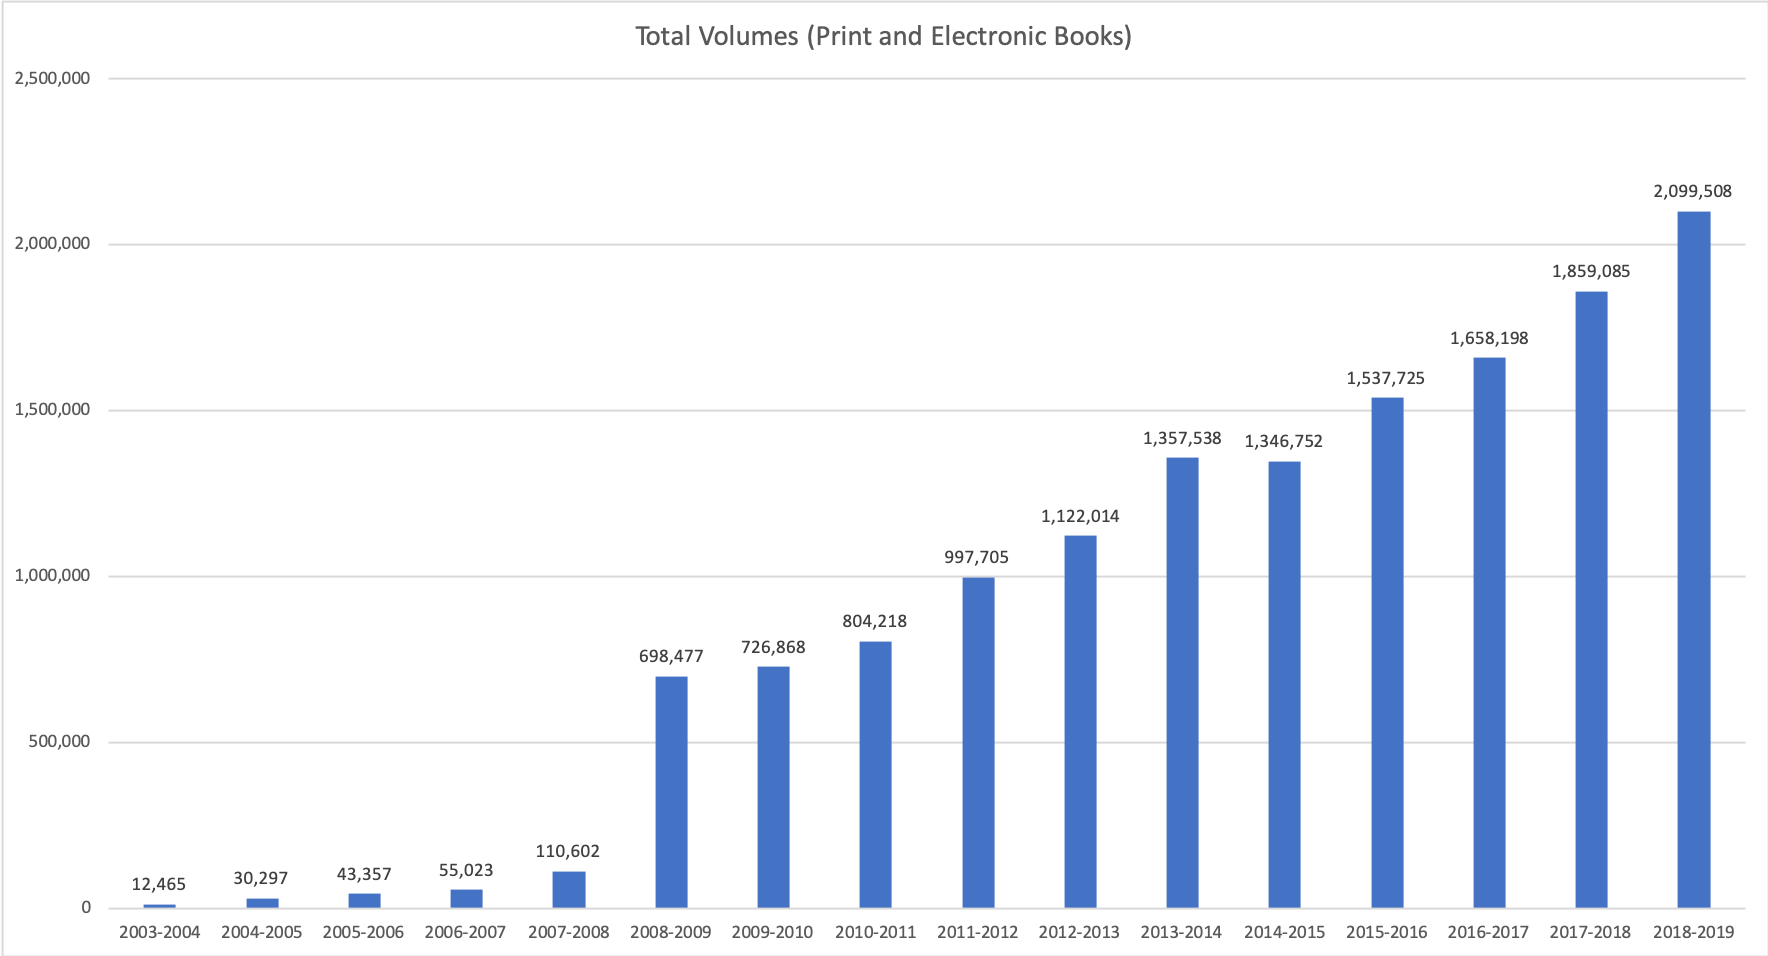 Total Volumes Held by UC Merced Library